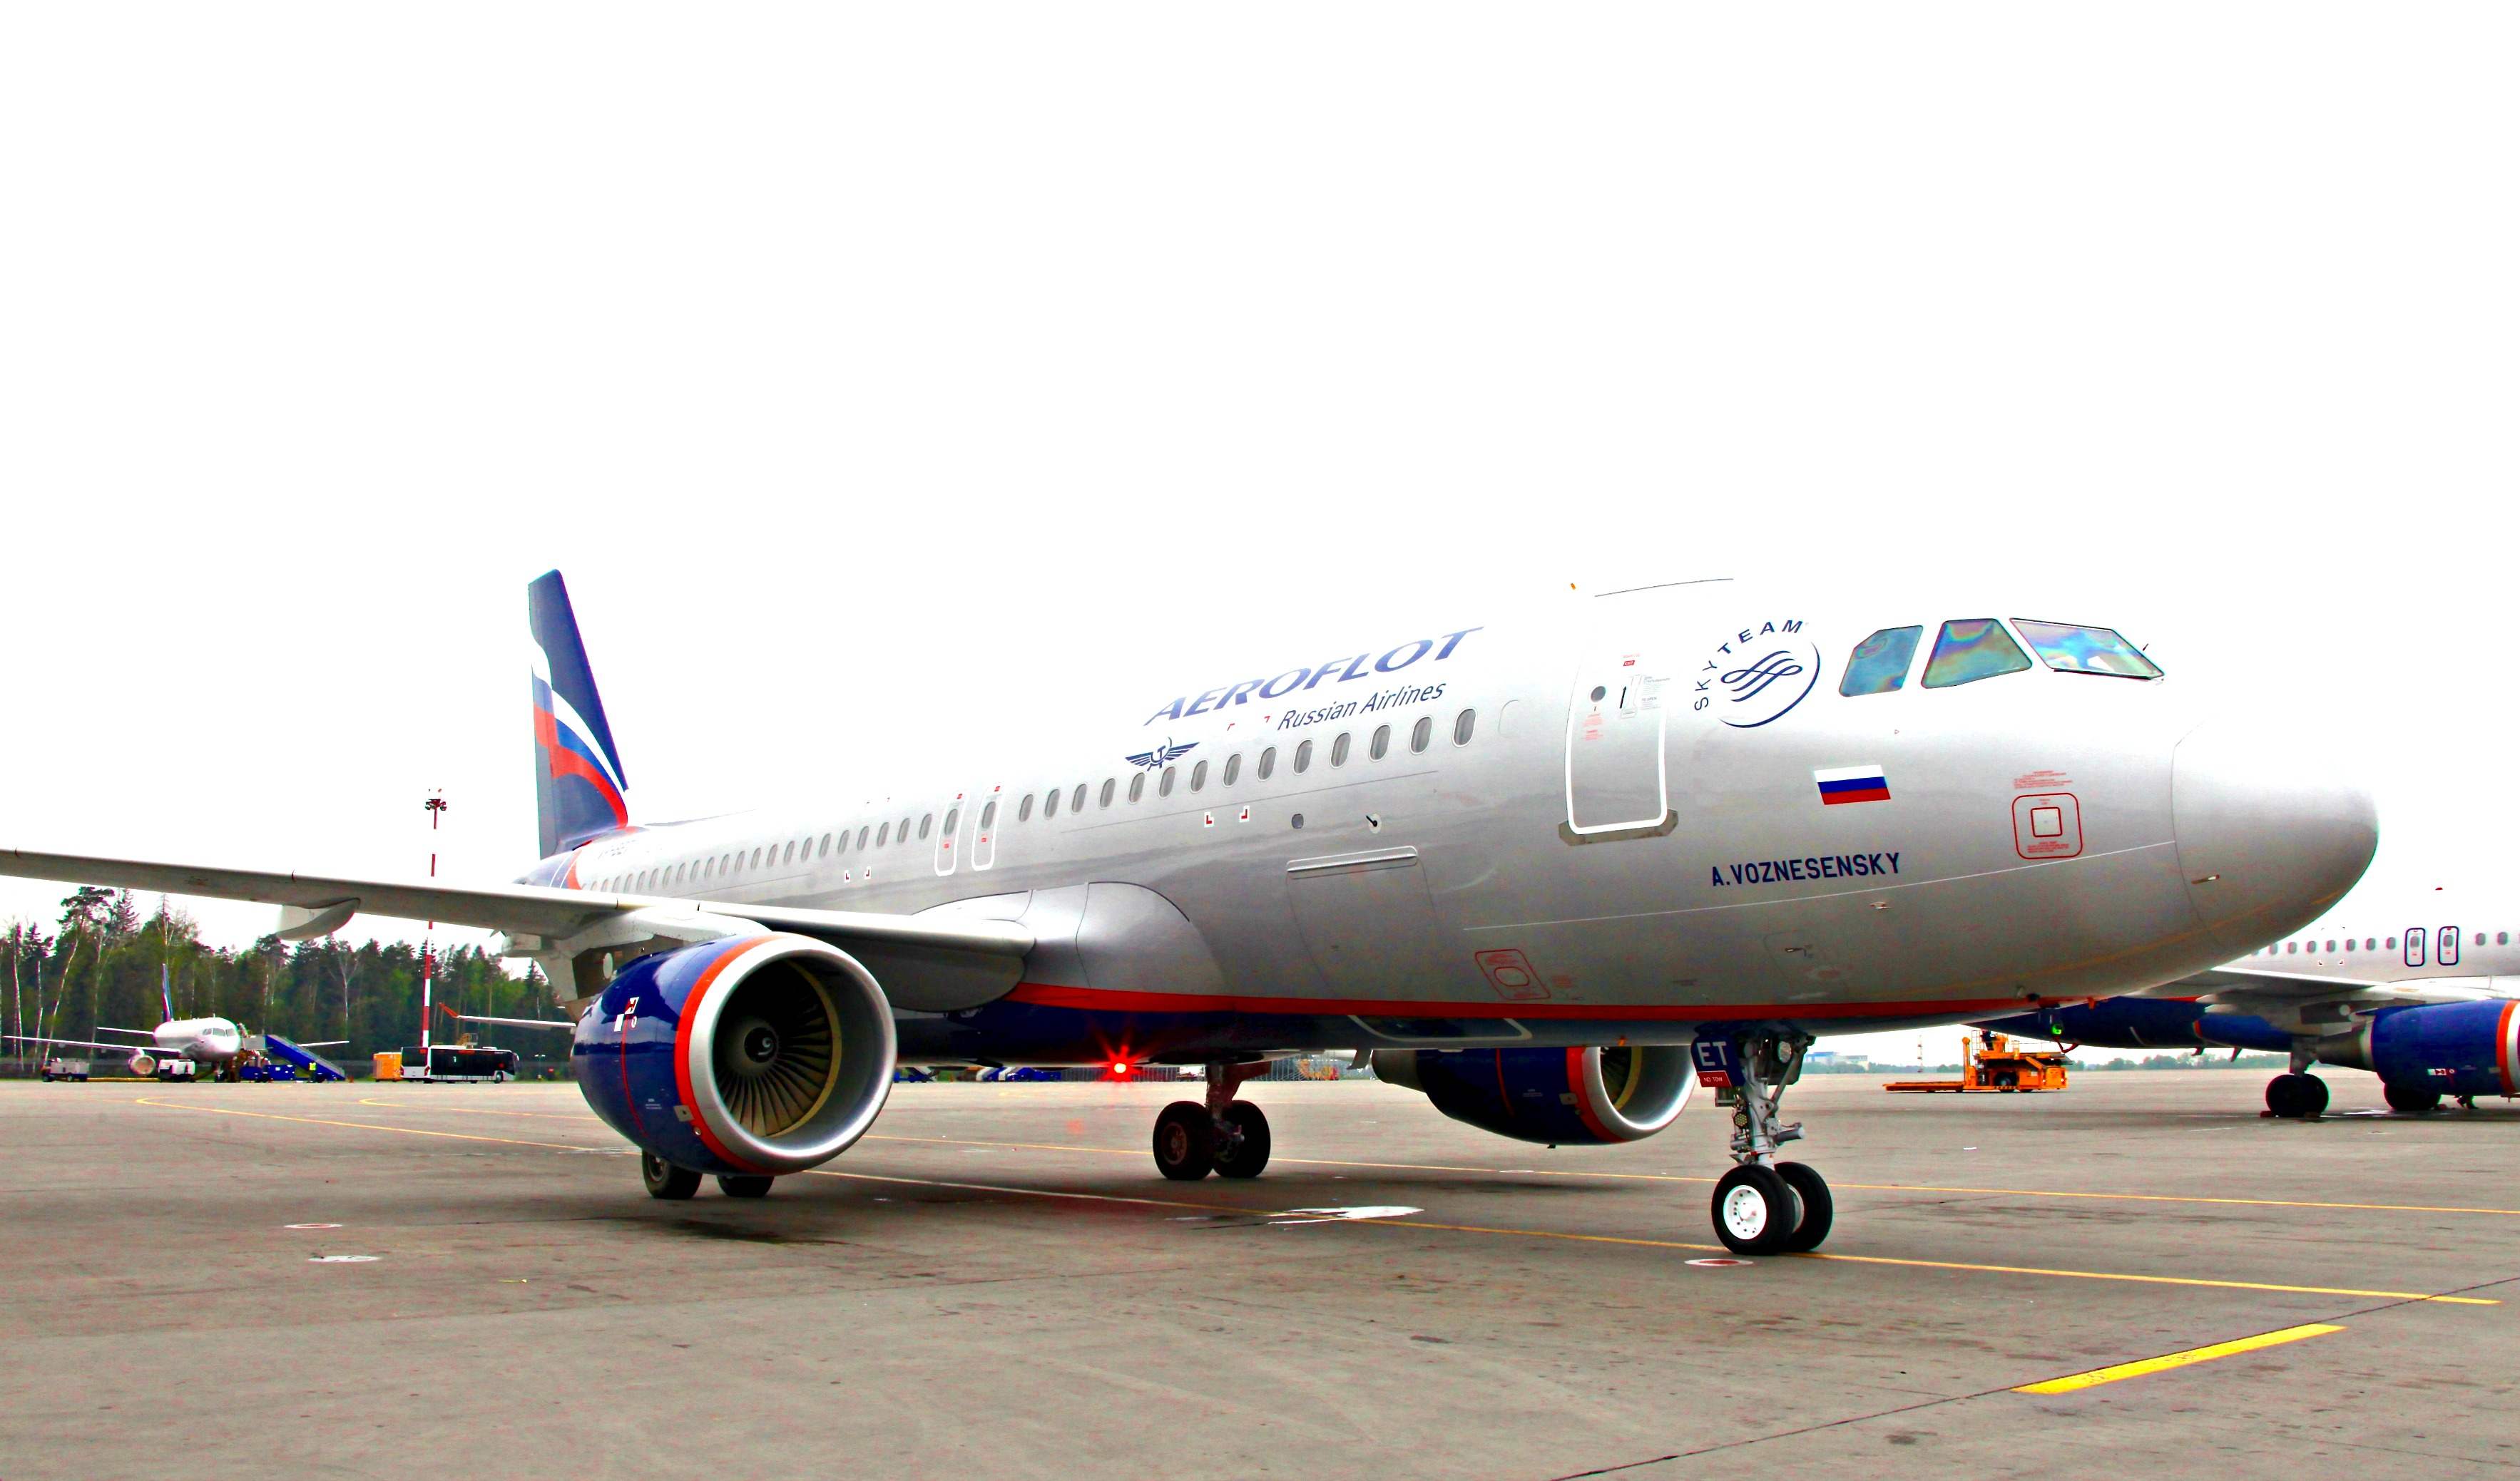 Aeroflot took delivery of two new A320s